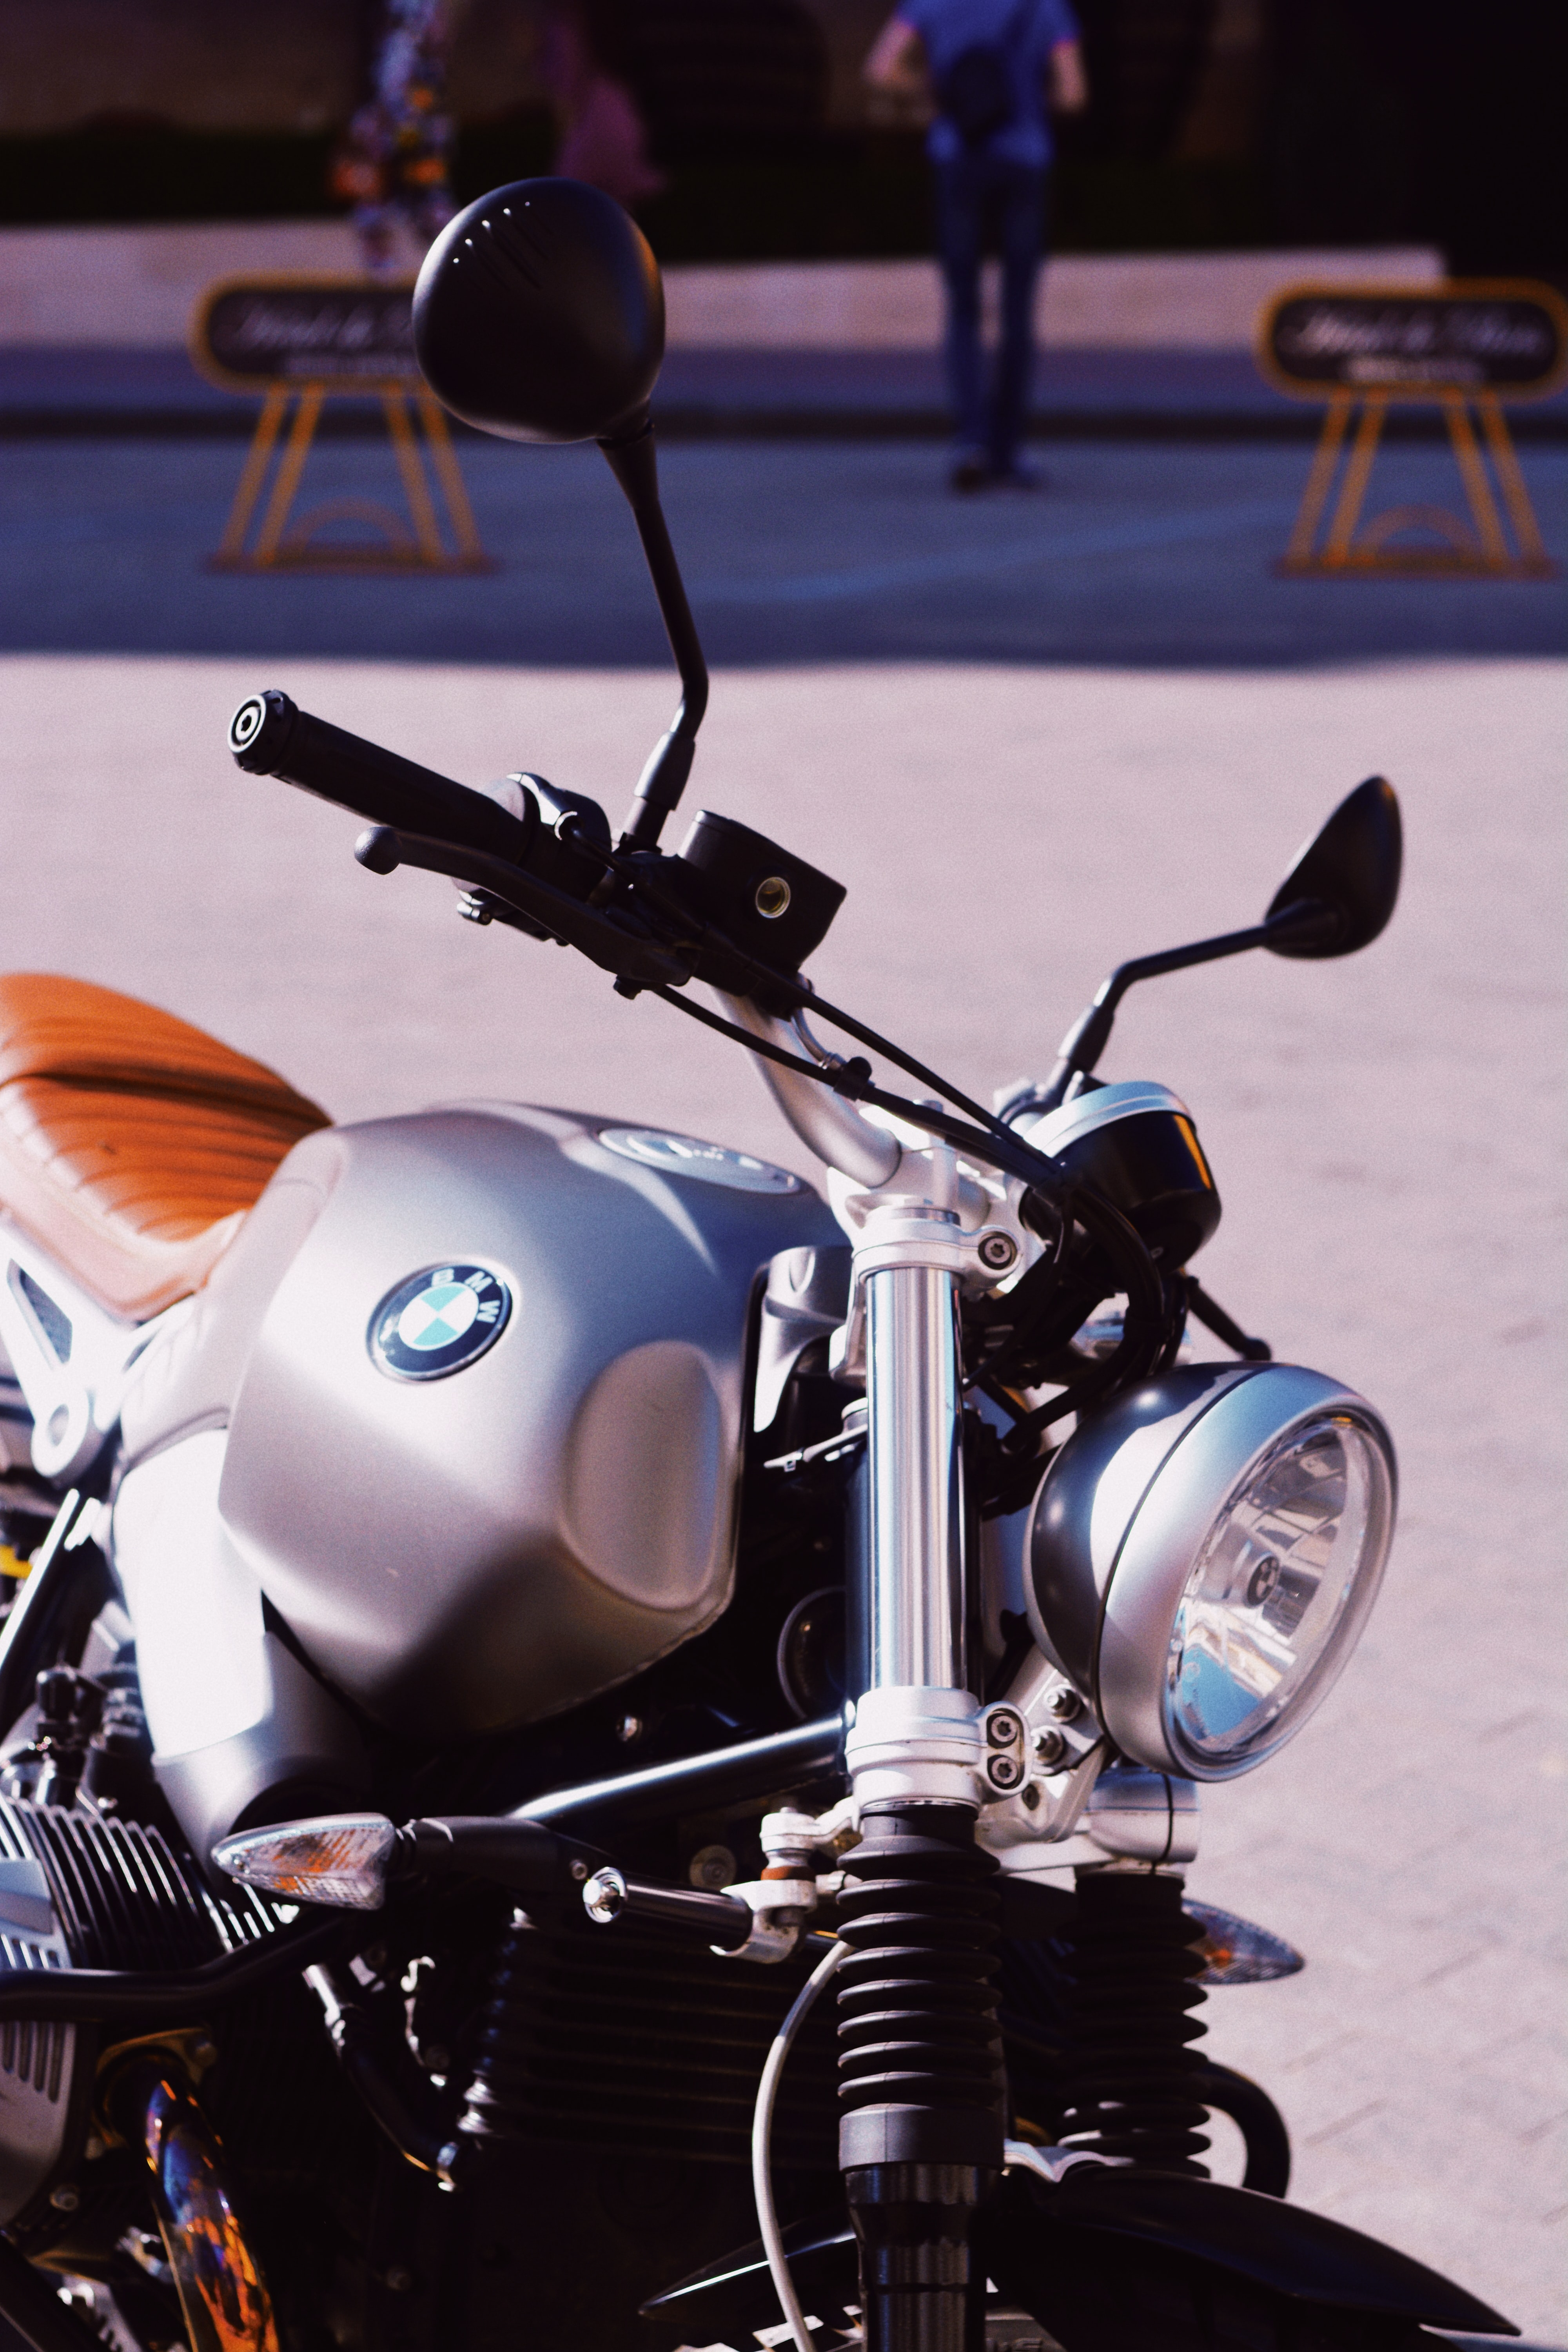 silver BMW standard motorcycle